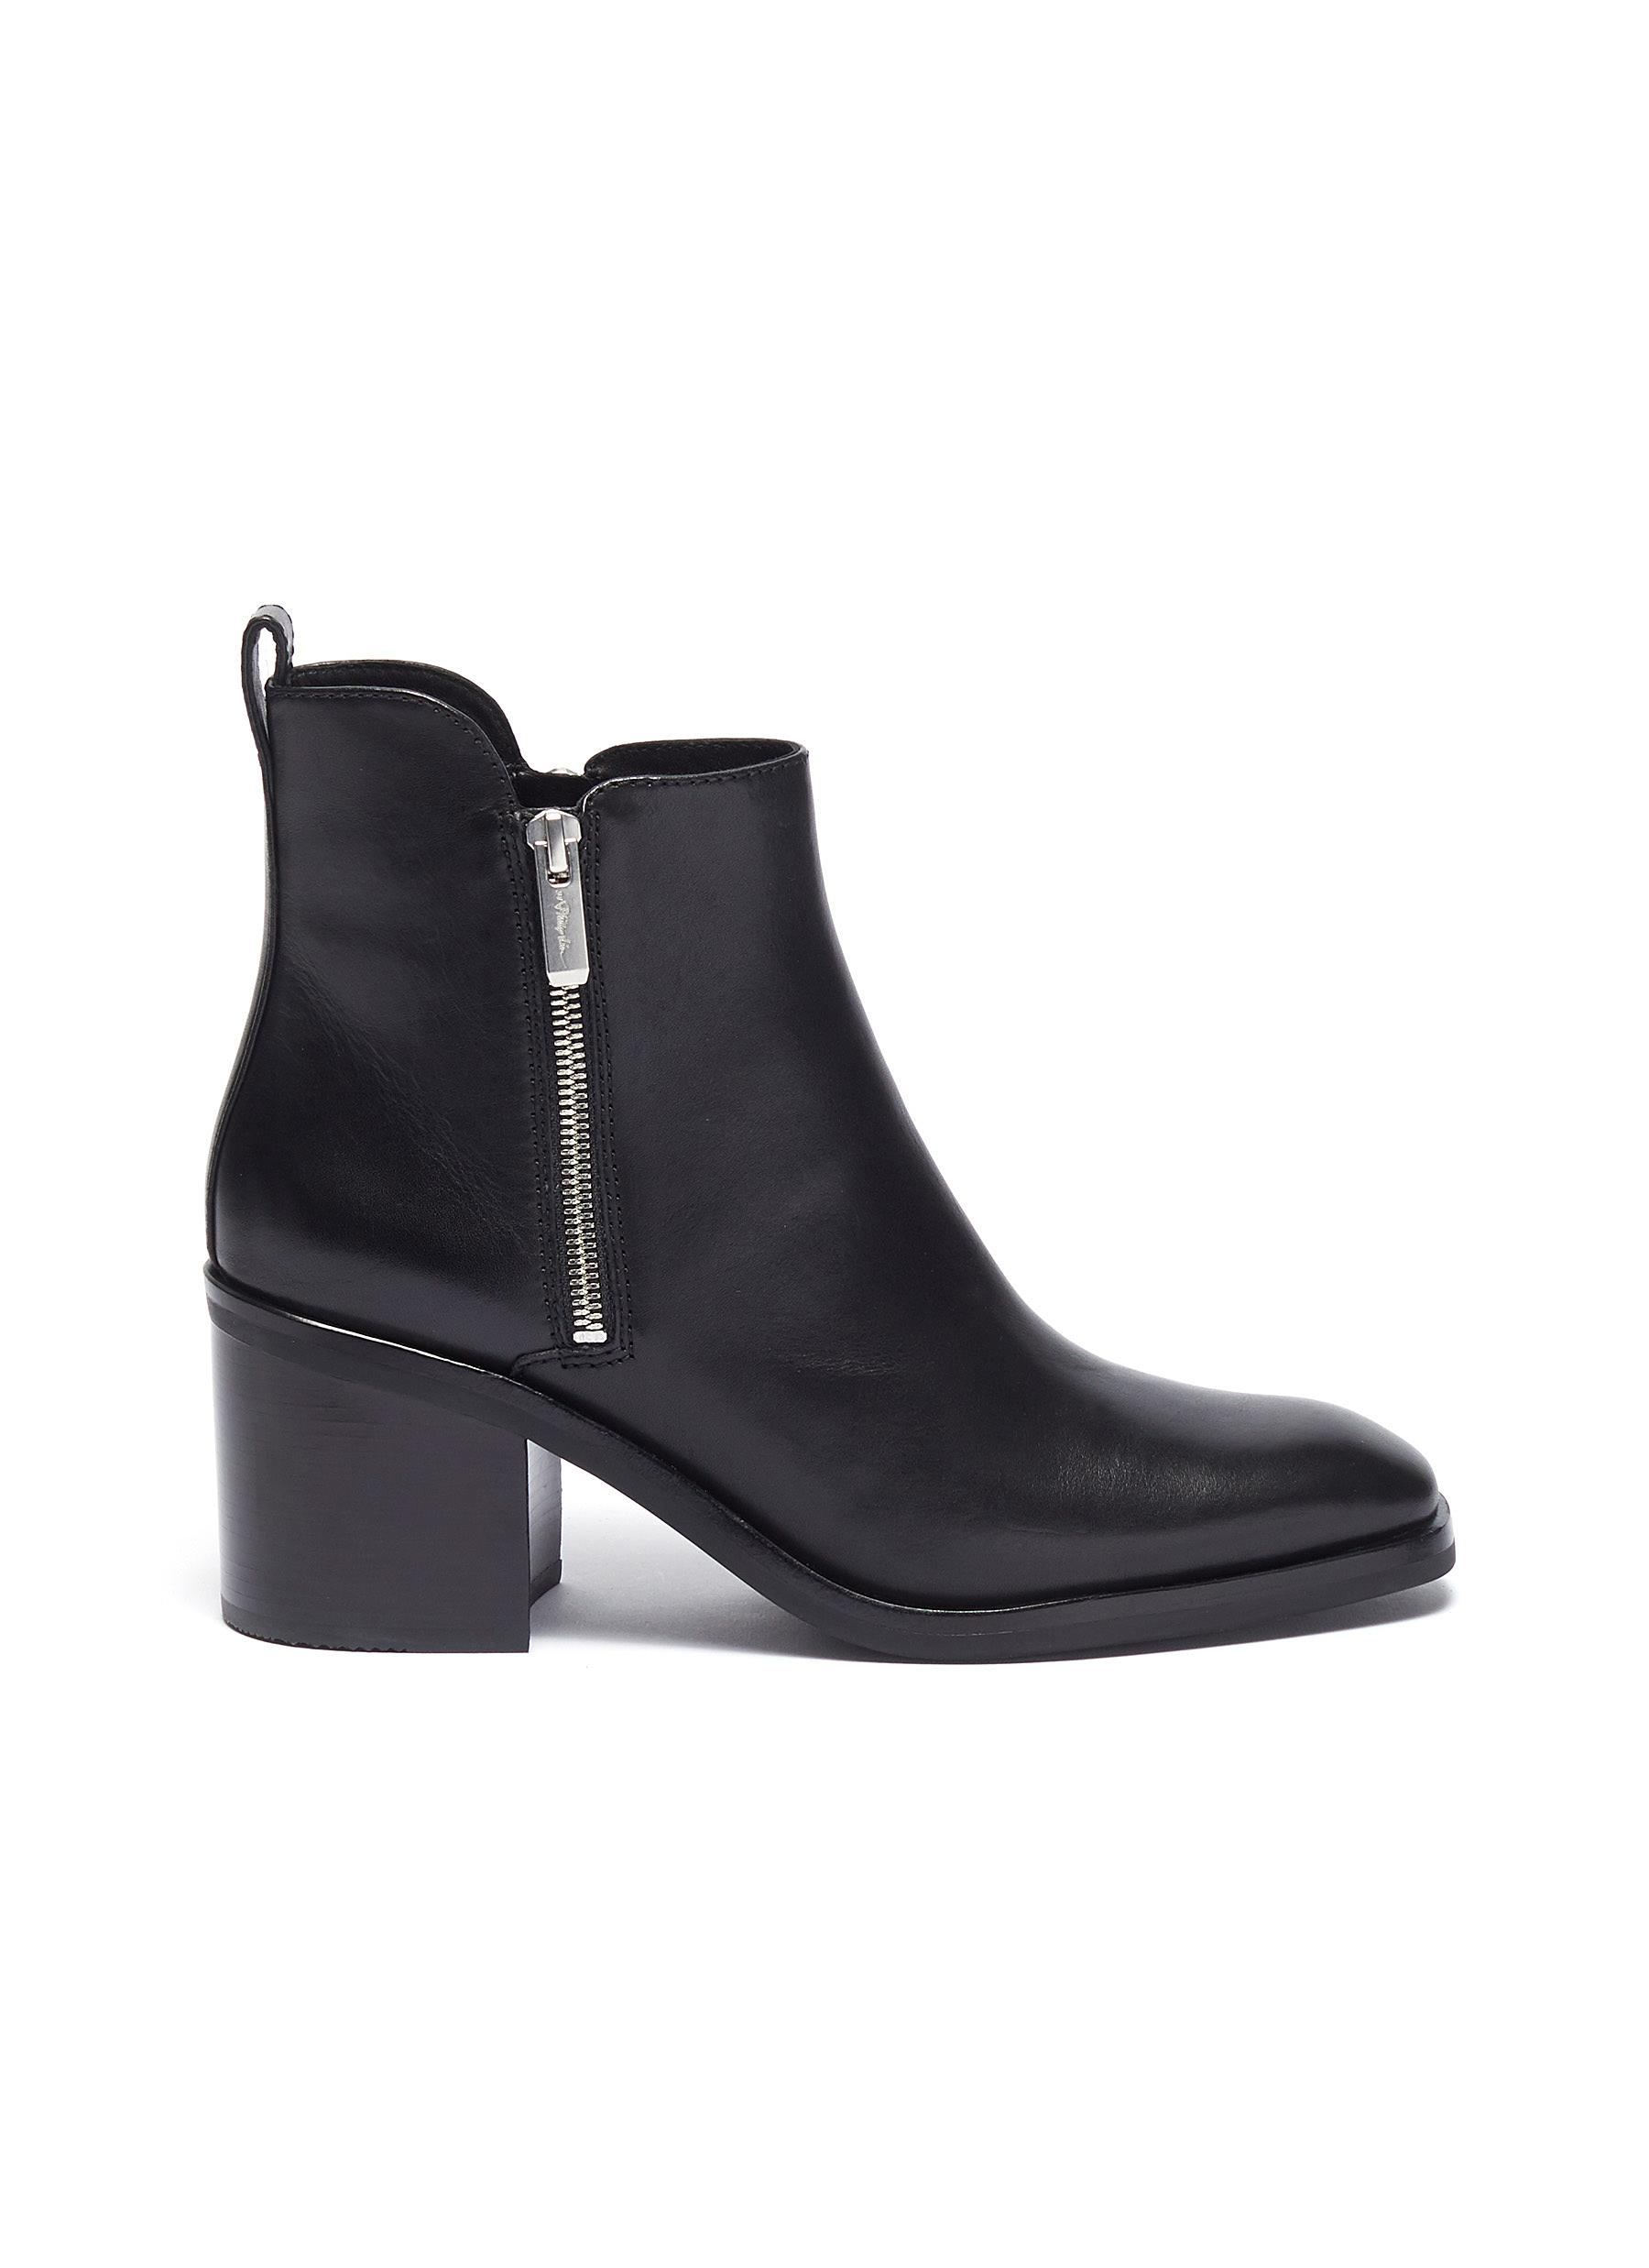 Alexa 70 water resistant leather ankle boots by 3.1 Phillip Lim